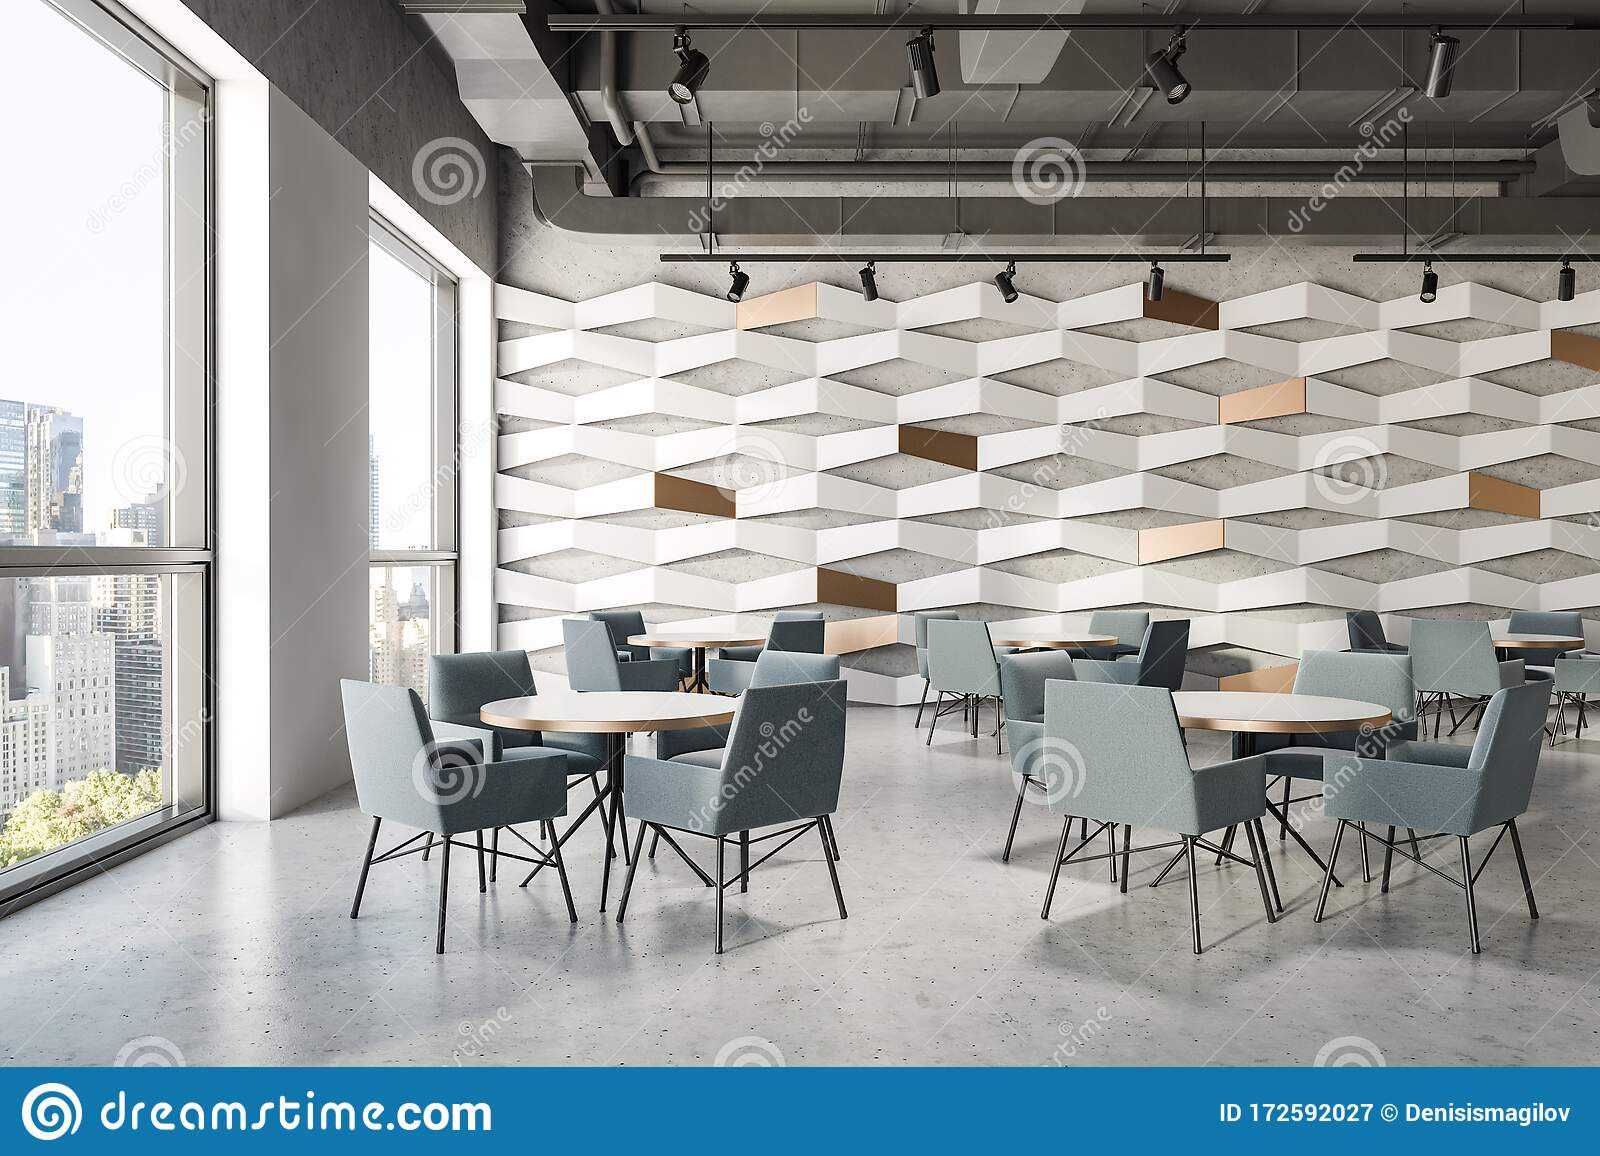 Gray Ceiling Geometric Pattern Cafe Interior Stock Illustration Illustration Of Comfortable Concrete 172592027